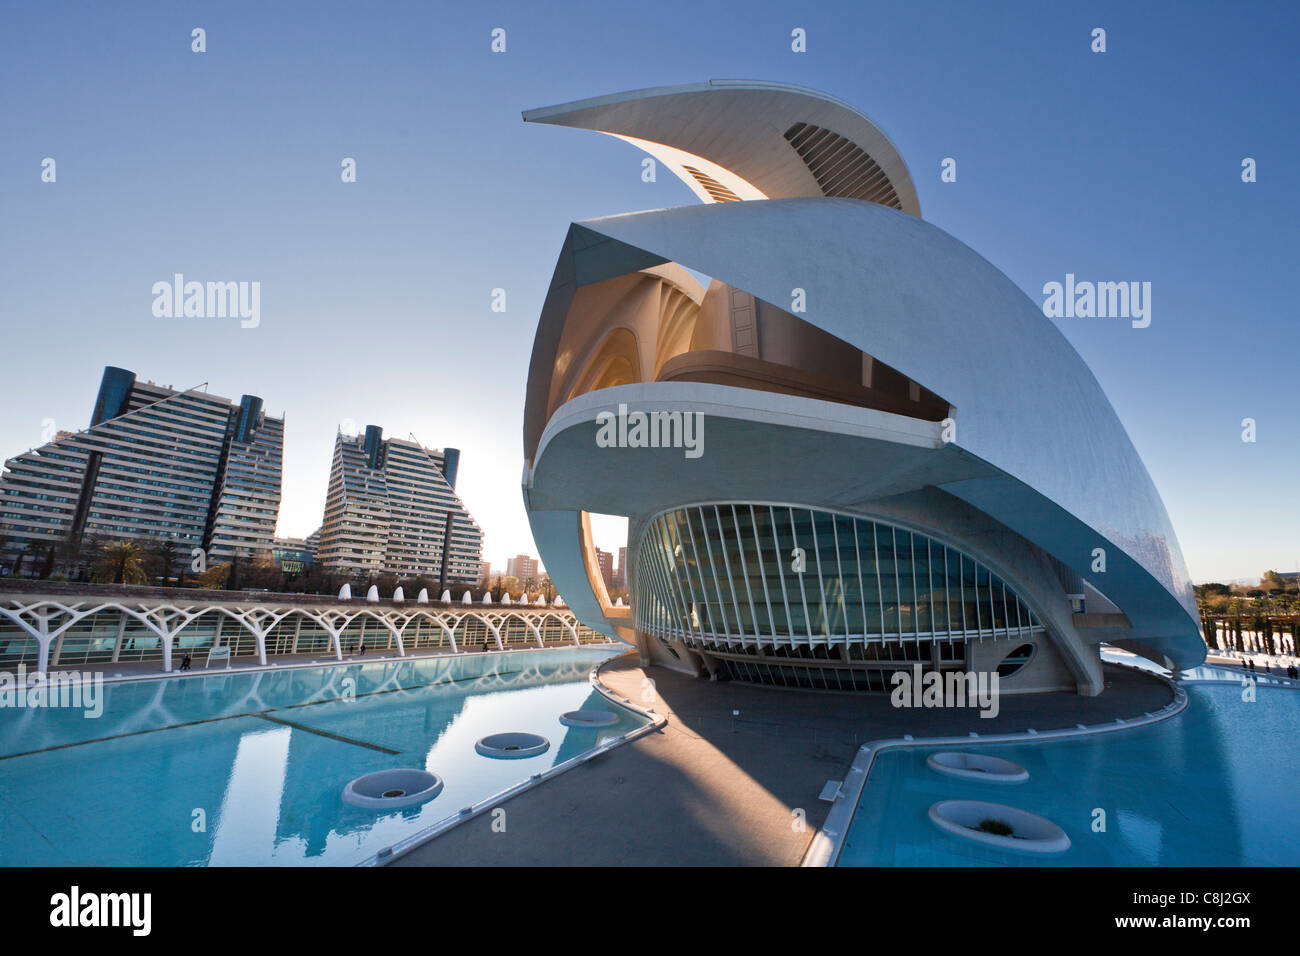 Spain, Europe, Valencia, City of Arts and Science, Calatrava, architecture, modern, Palace of Arts, water Stock Photo